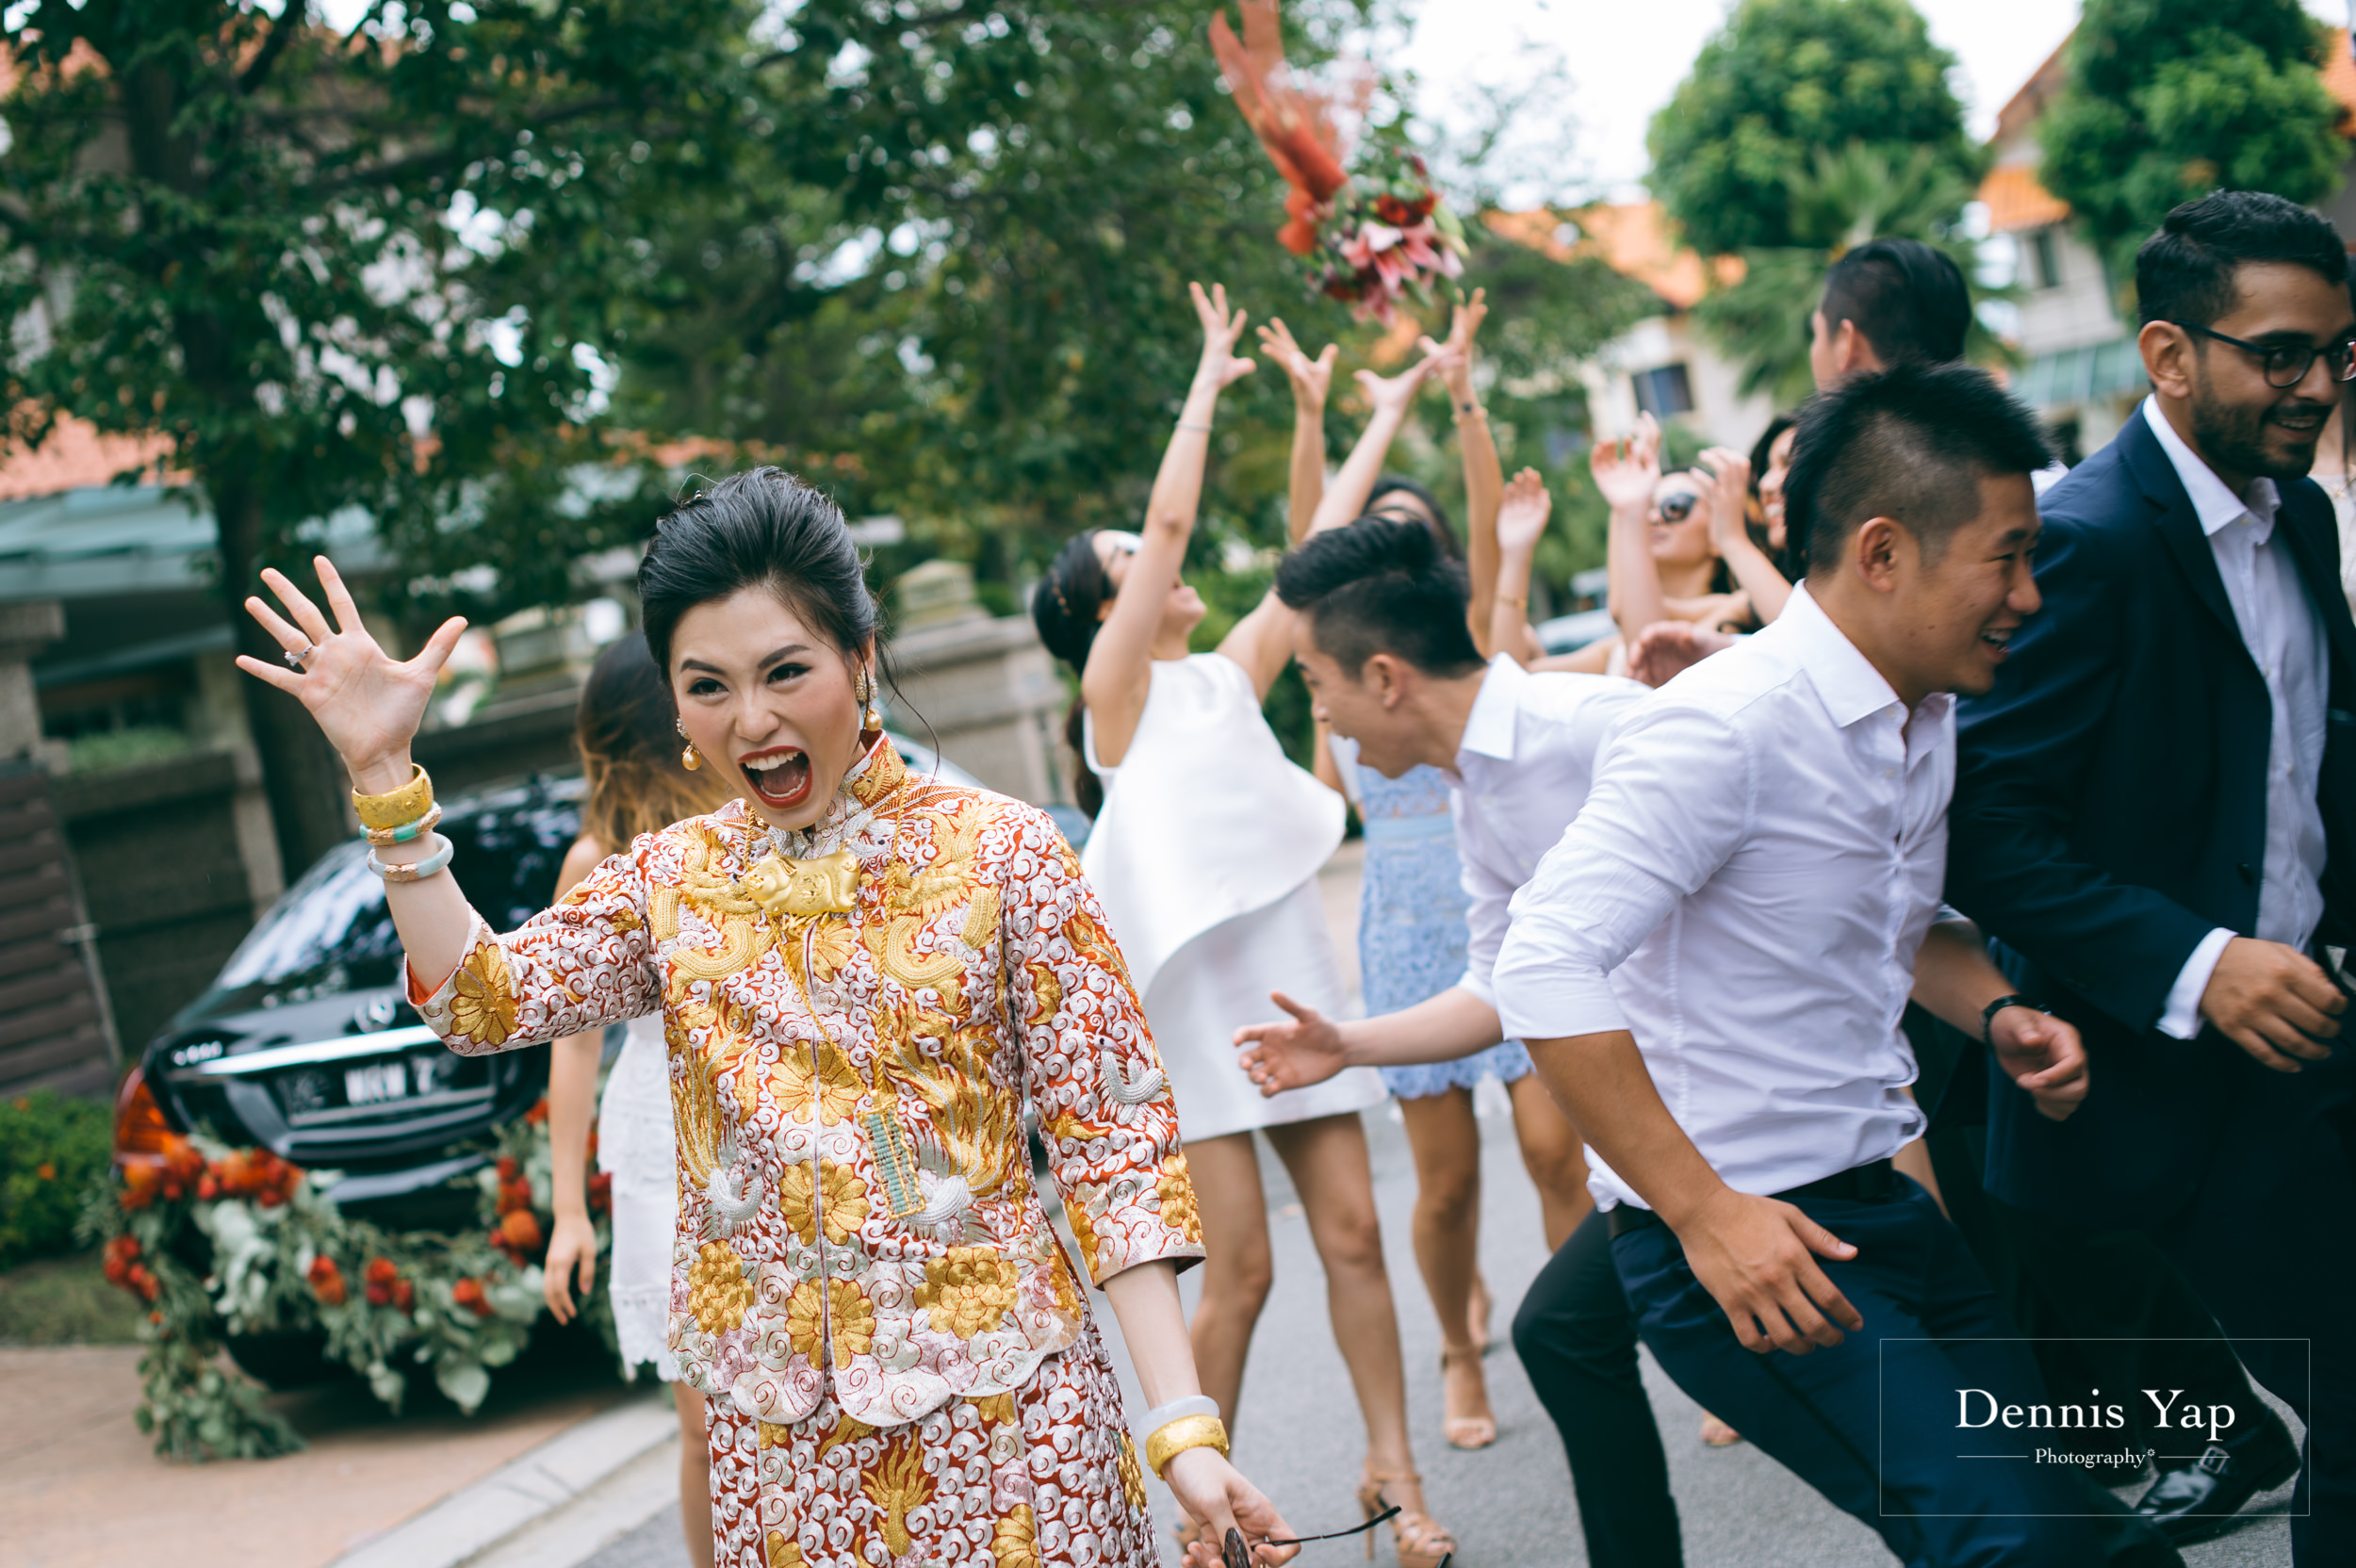 ser siang sze liang wedding day crazy style dennis yap photography malaysia wedding photographer-28.jpg